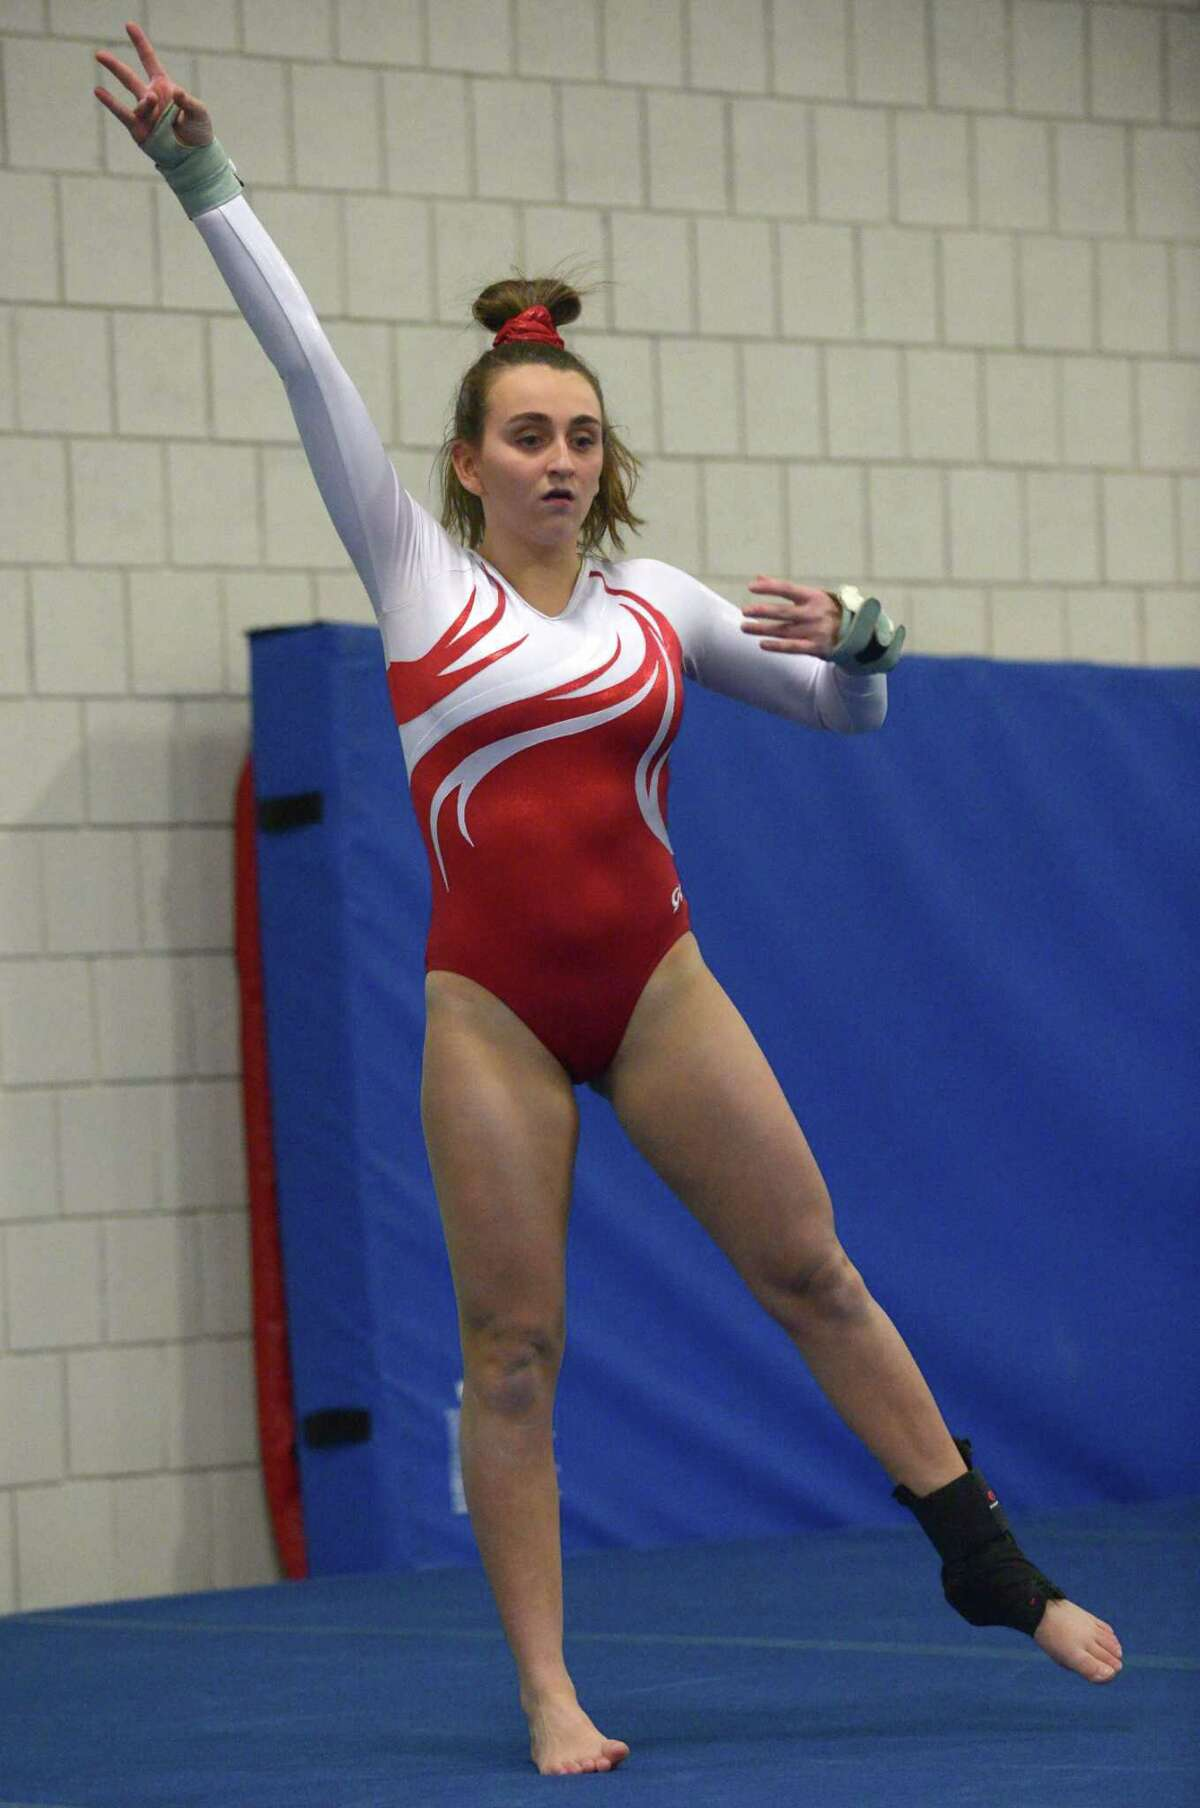 Greenwich's Gianna Cardini competes in her floor exercise against Wilton on Jan. 4 in Wilton.